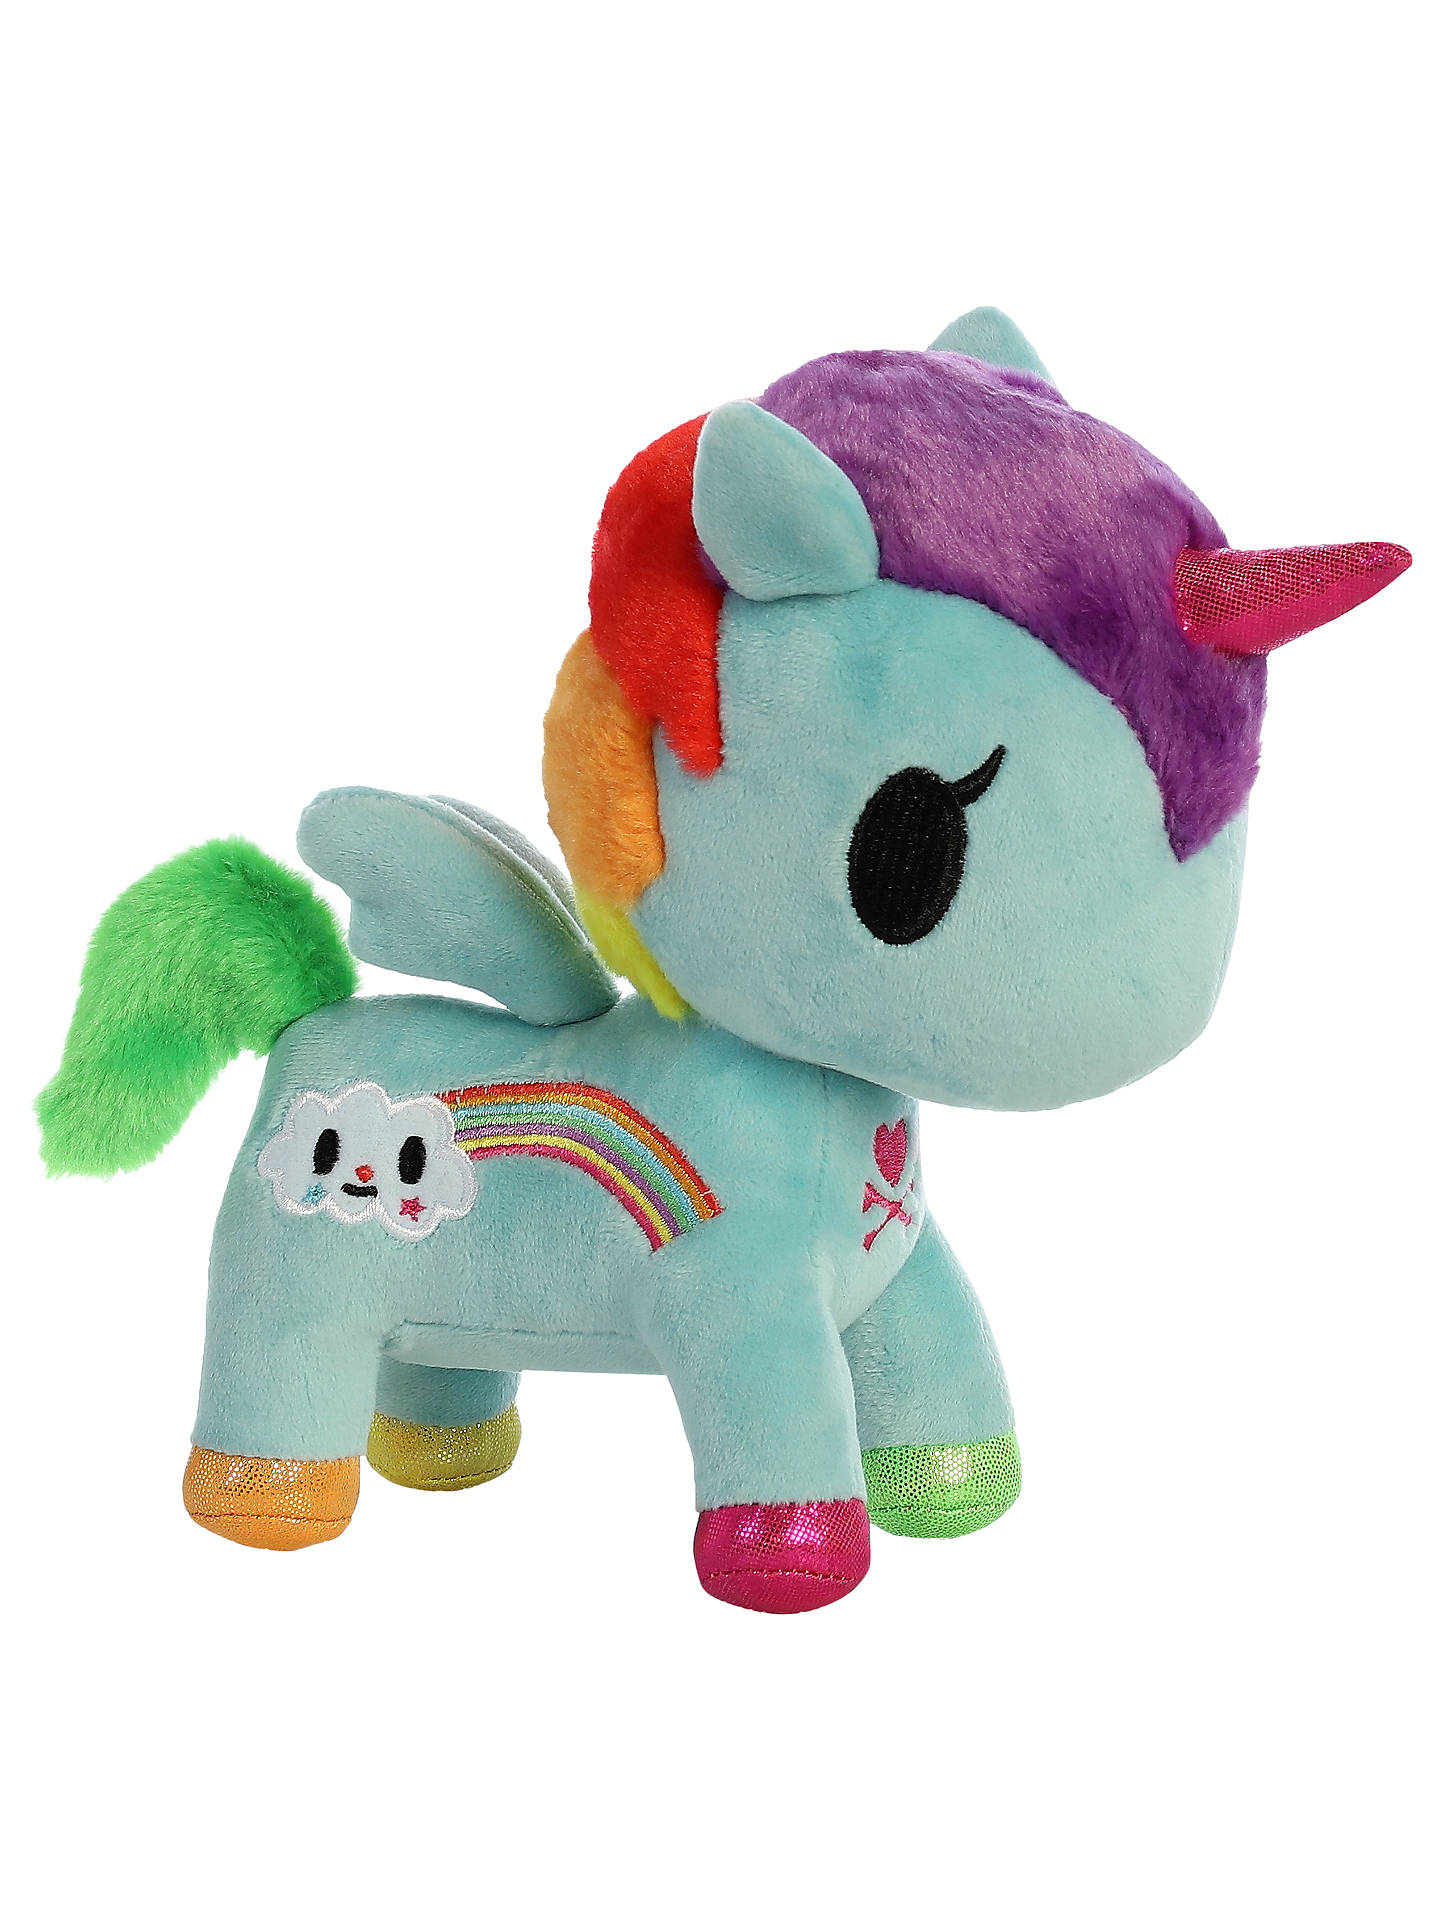 BuyAurora TokiDoki Pixie Unicorno Soft Toy, Small Online at johnlewis.com